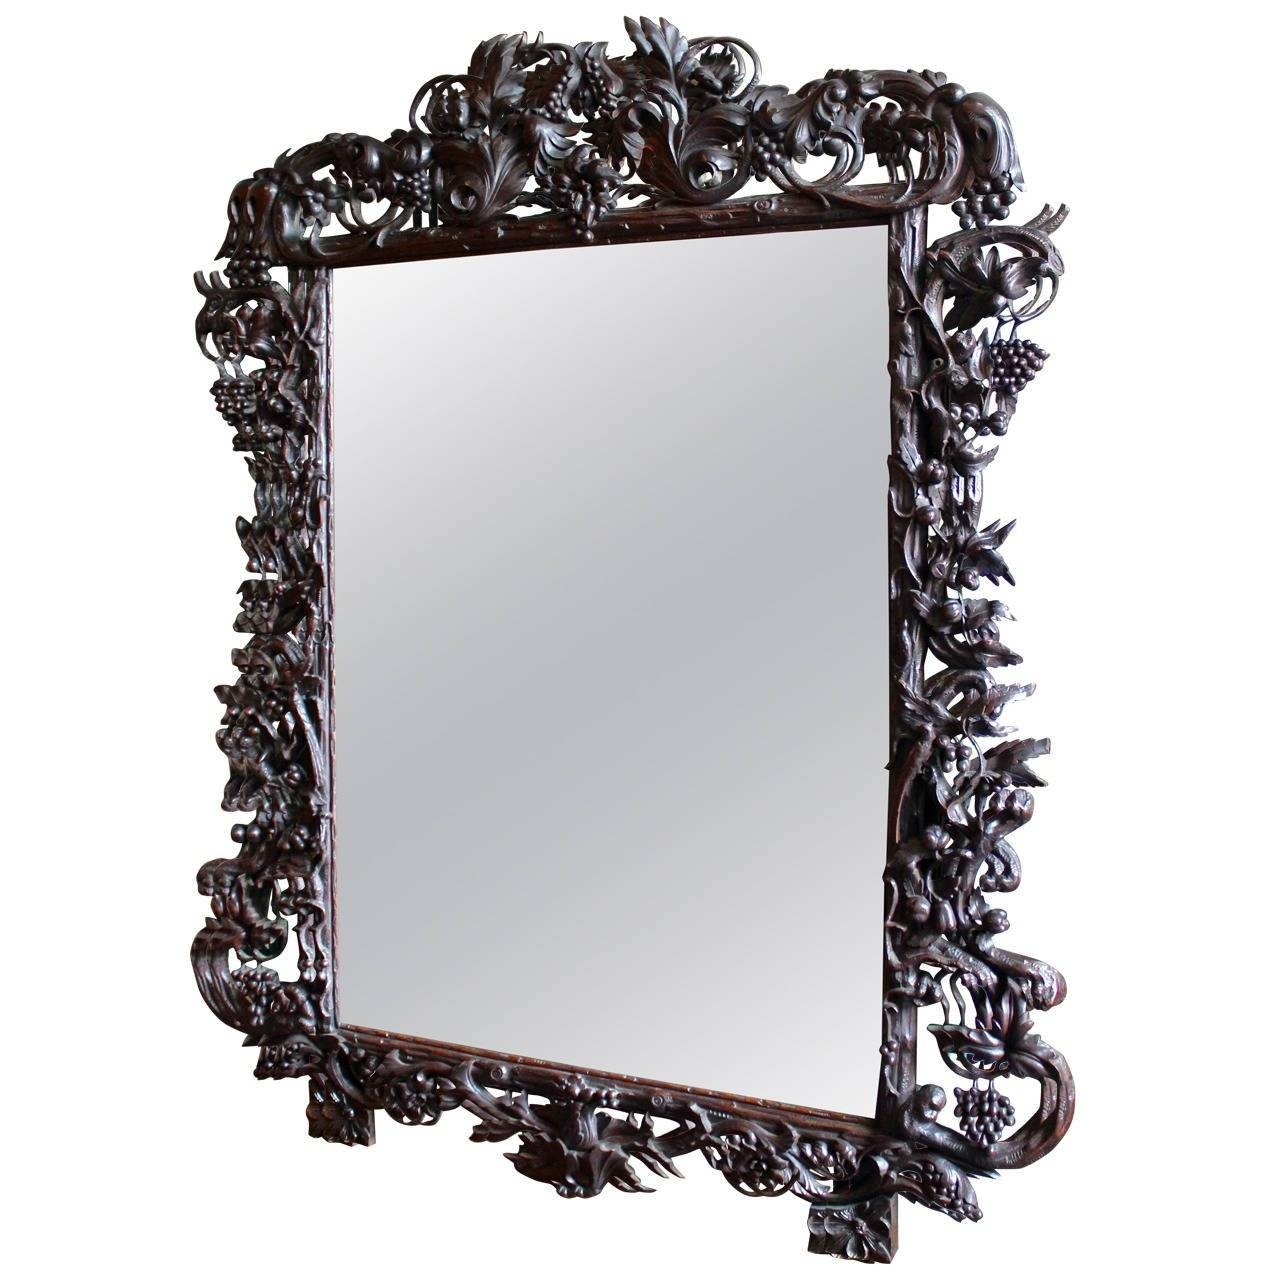 Late 19Th Century Ornate Large Black Forest French Mirror At 1Stdibs within Large Black Ornate Mirrors (Image 5 of 15)